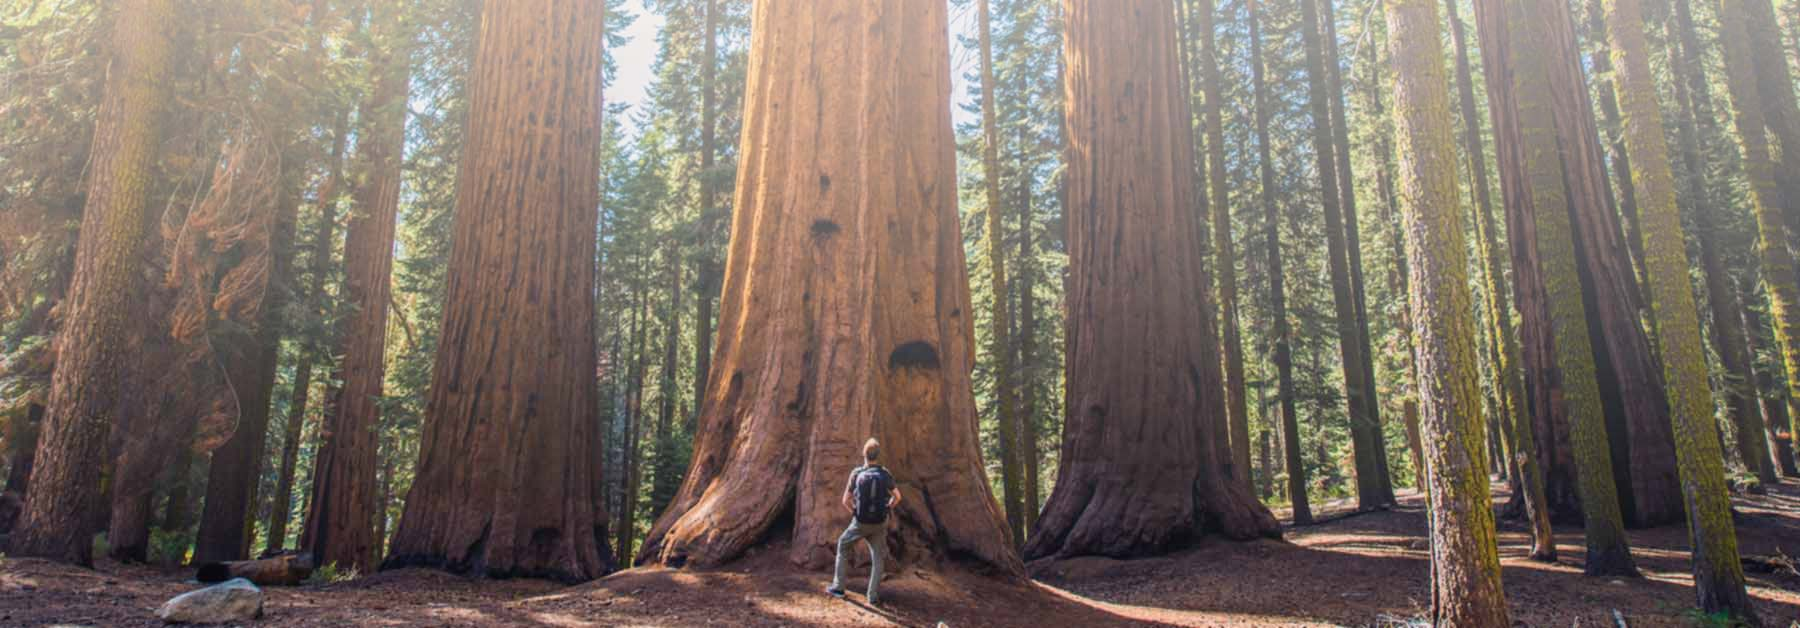 redwood-trees-01-1800x628